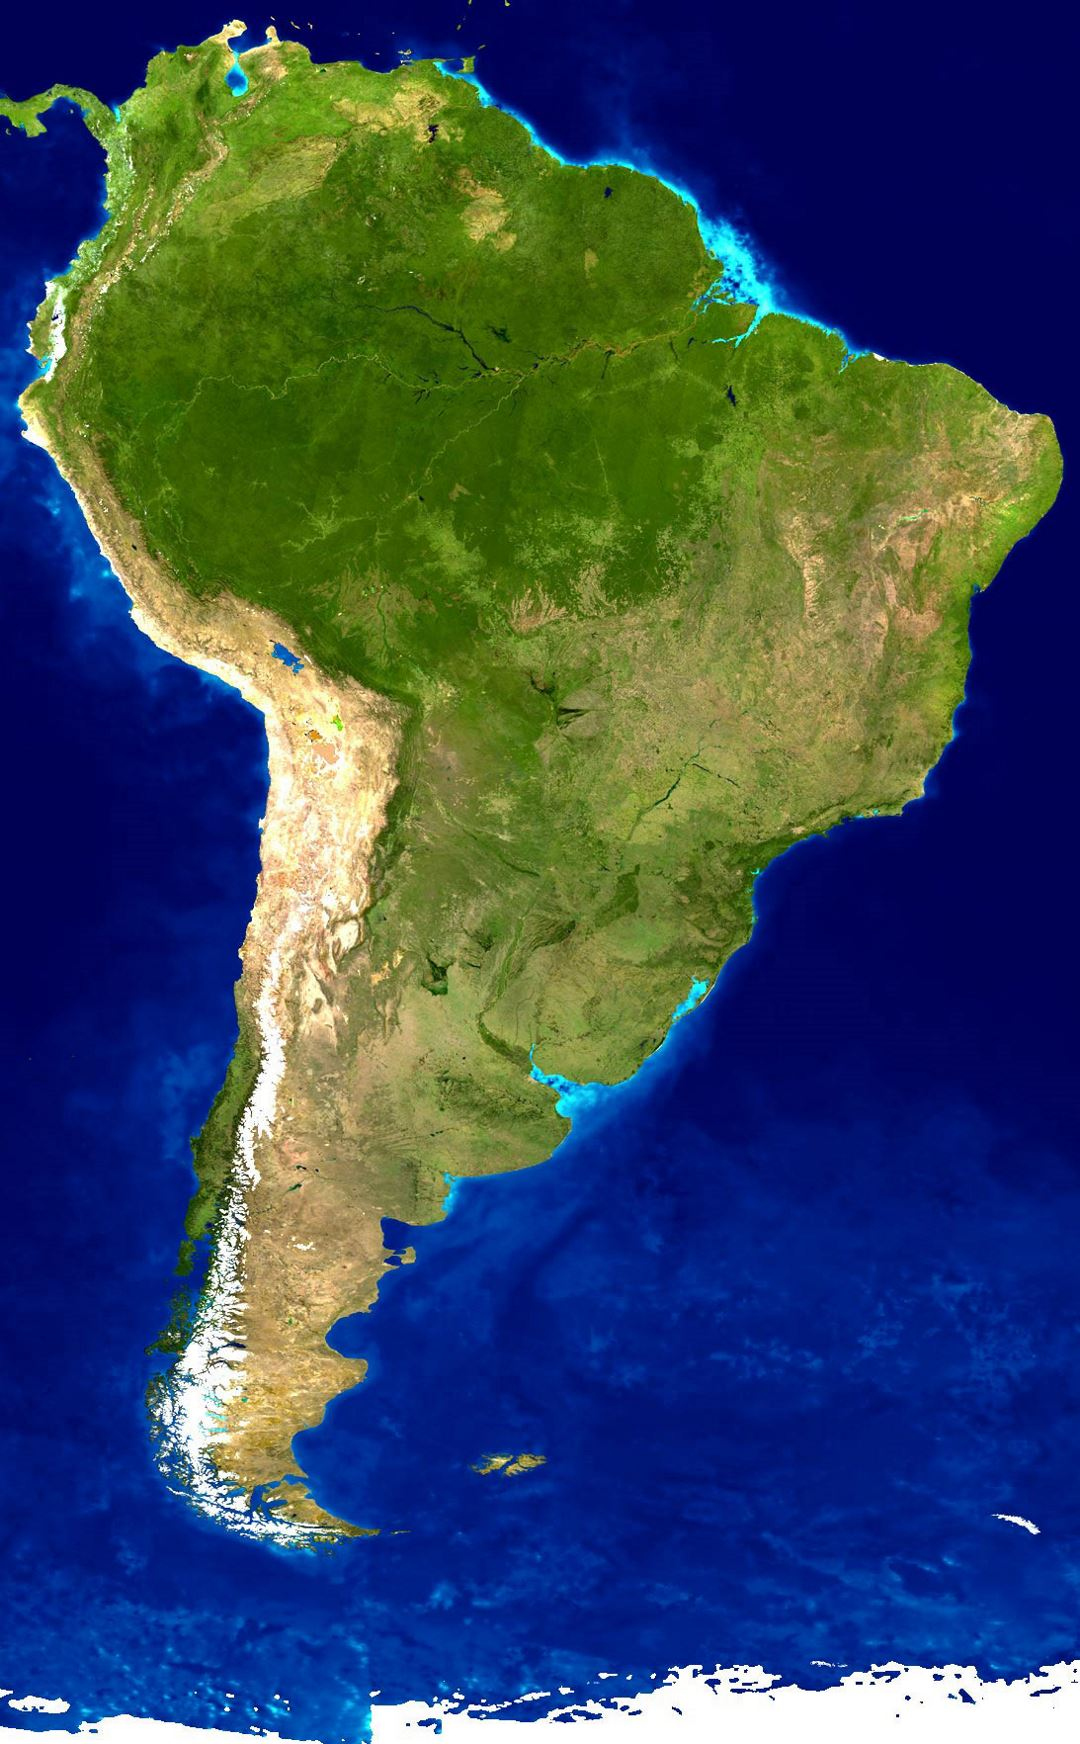 Detailed satellite map of South America